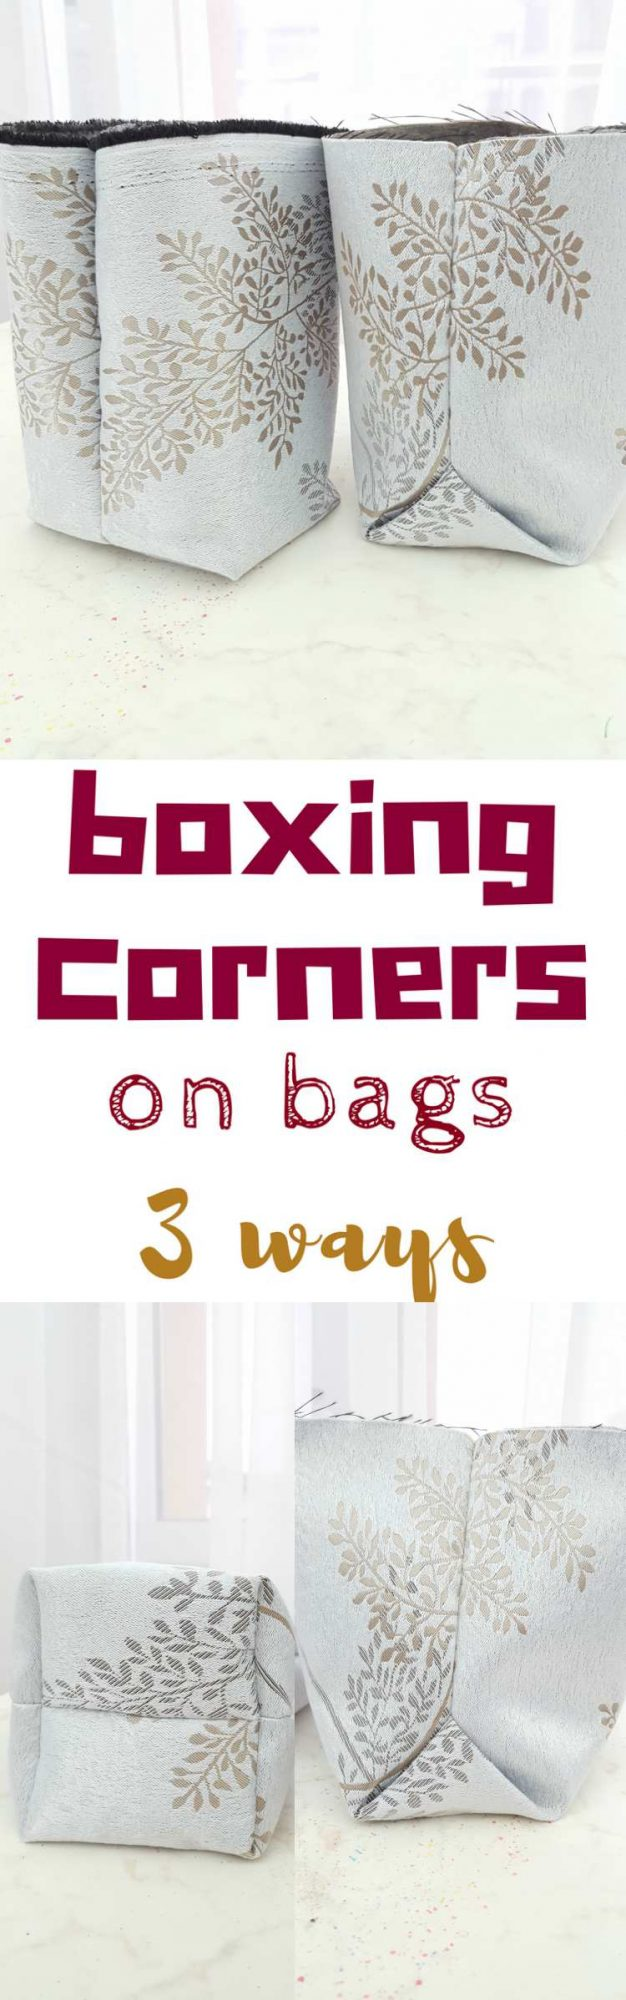 Sewing box corners